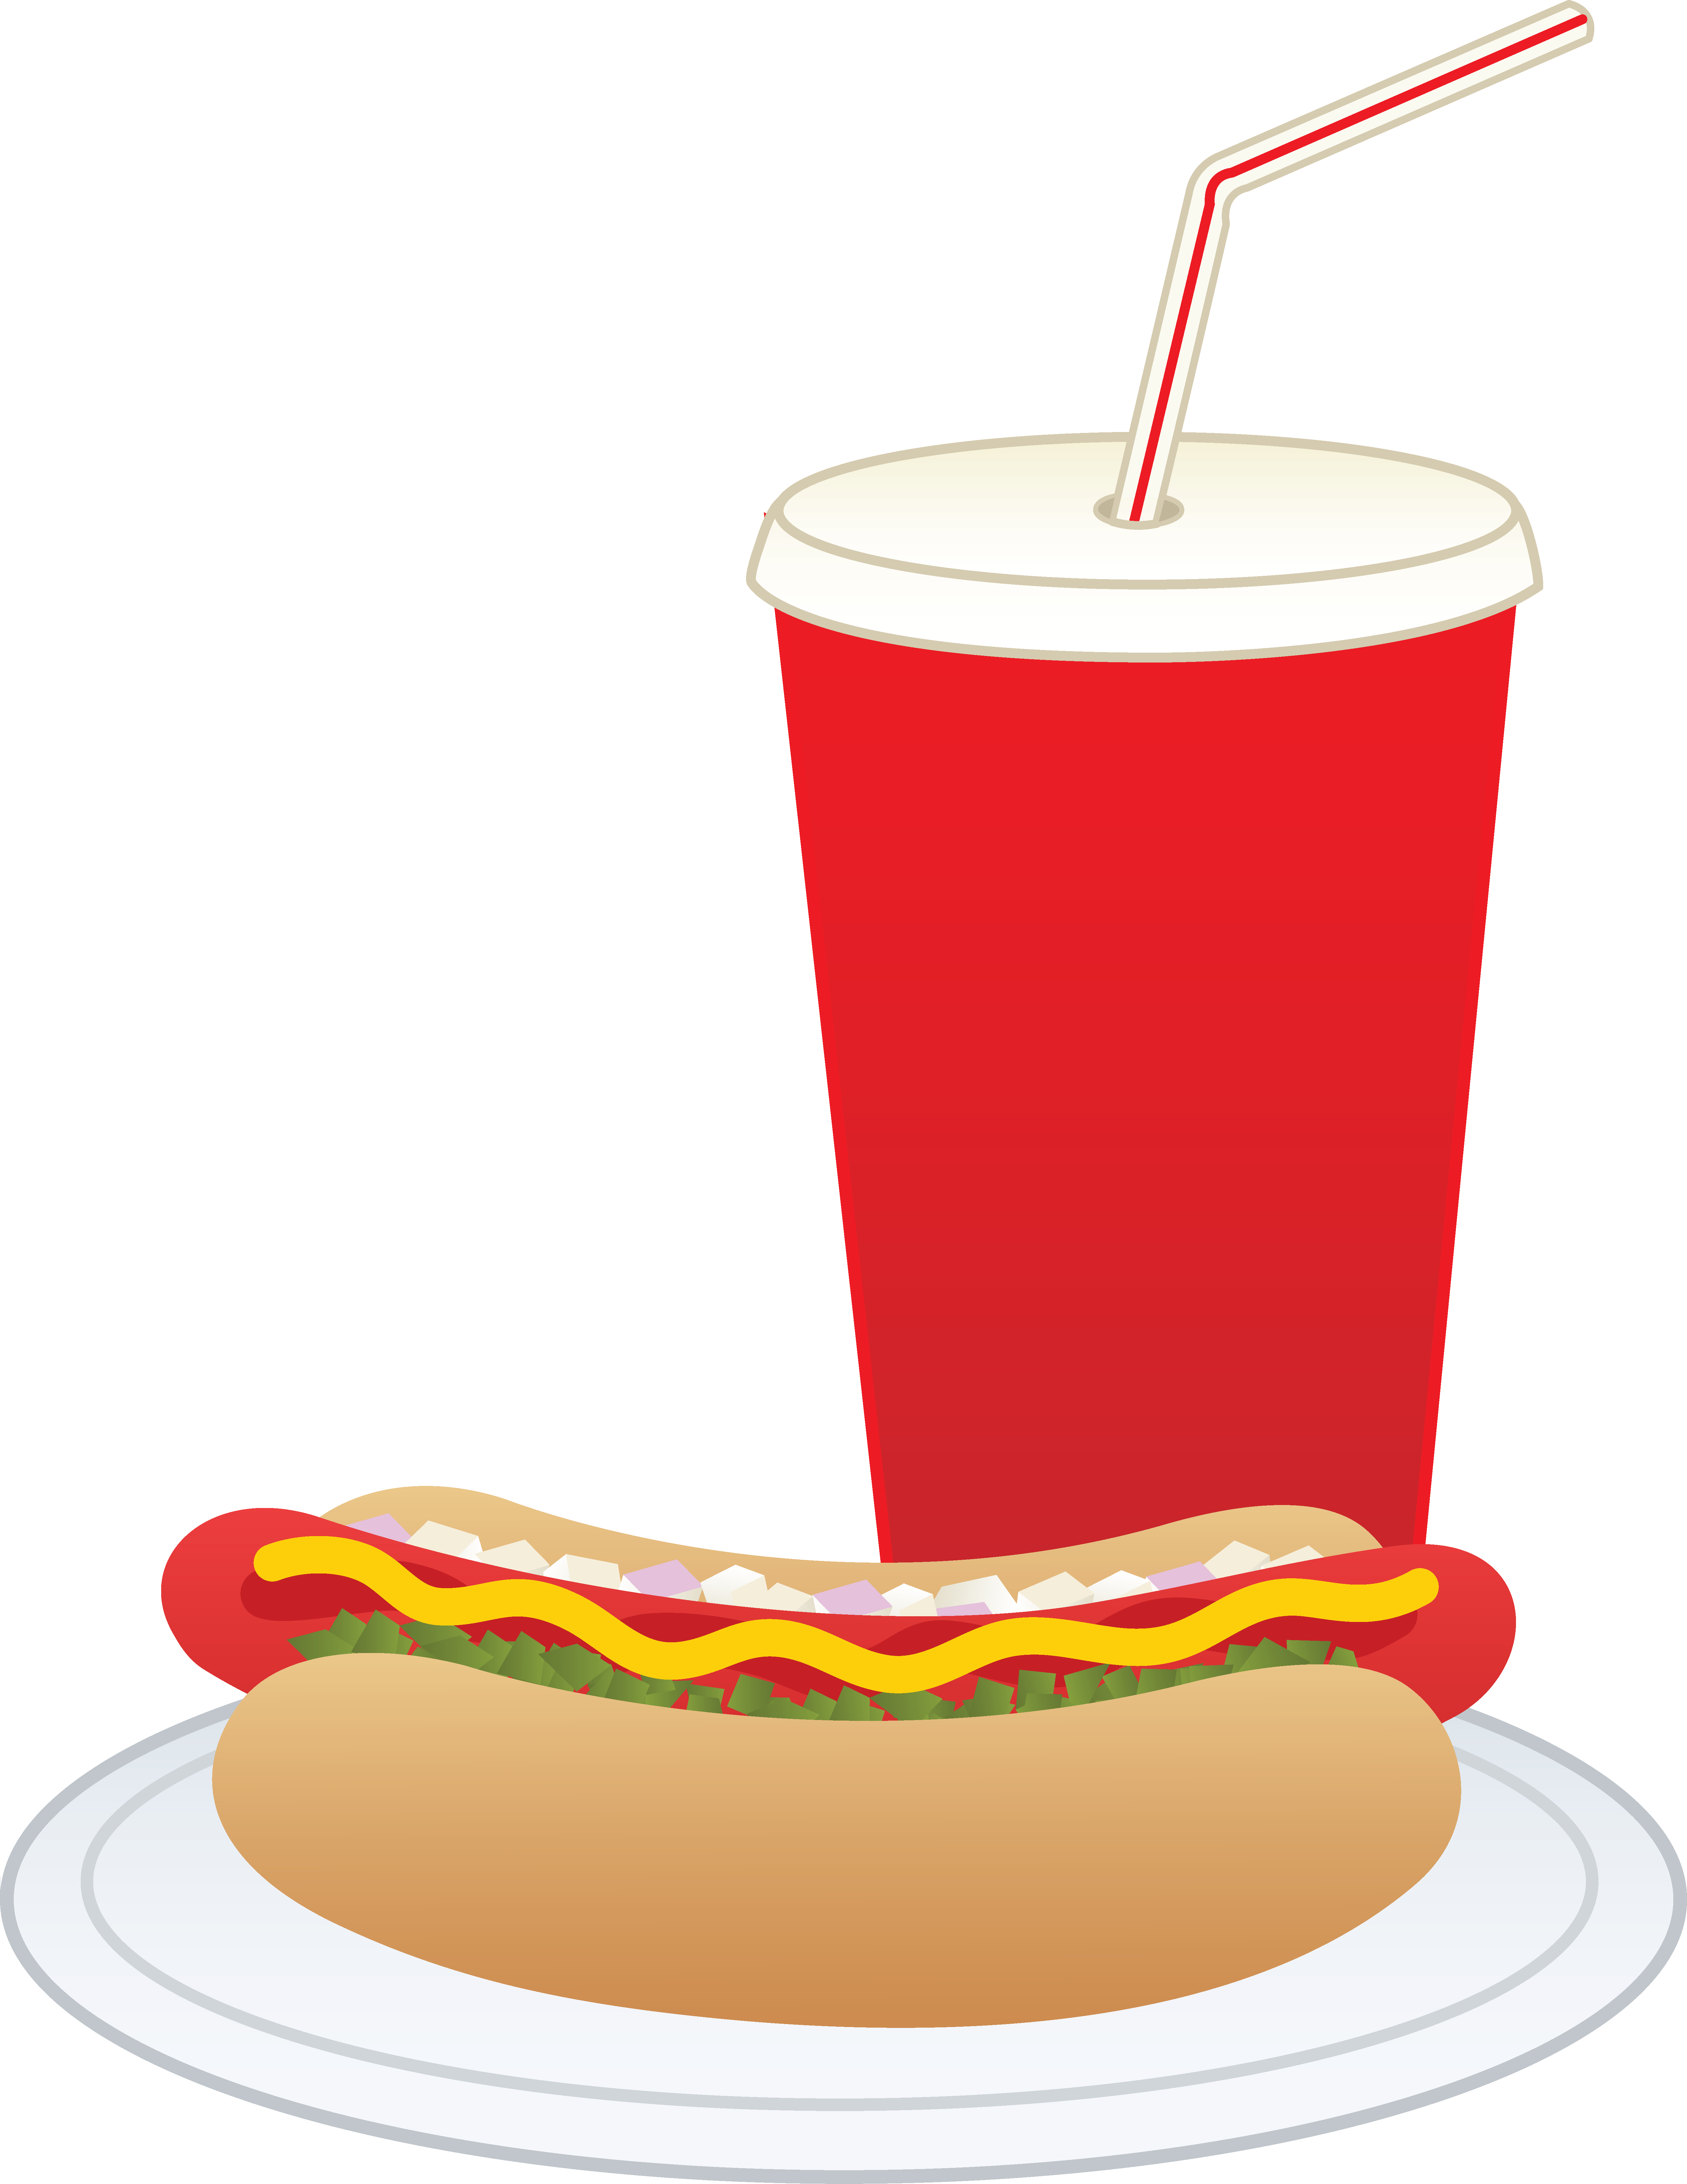 Free clipart hot dog clipart freeuse download Hotdog Clipart | Clipart Panda - Free Clipart Images clipart freeuse download